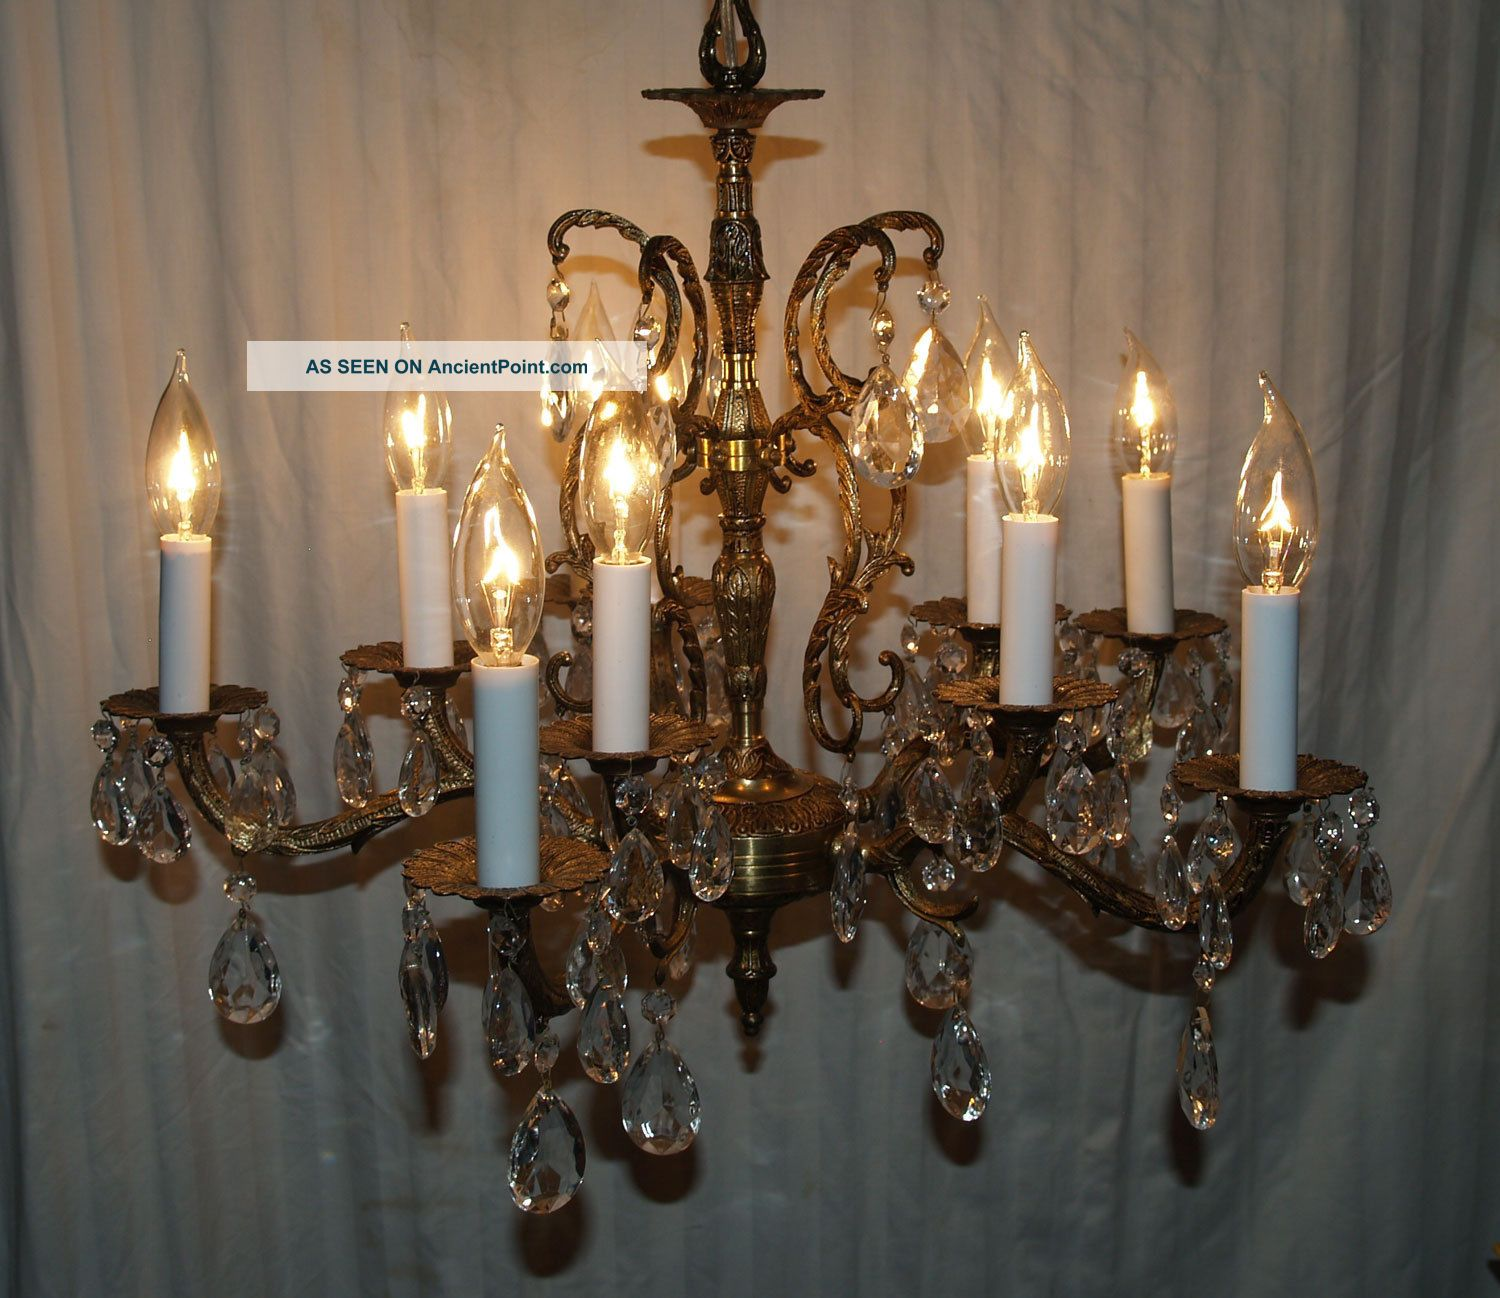 Brass And Crystal Chandelier Made In Spain Designs - Brass And Crystal Chandelier Made In Spain - Chandelier Designs